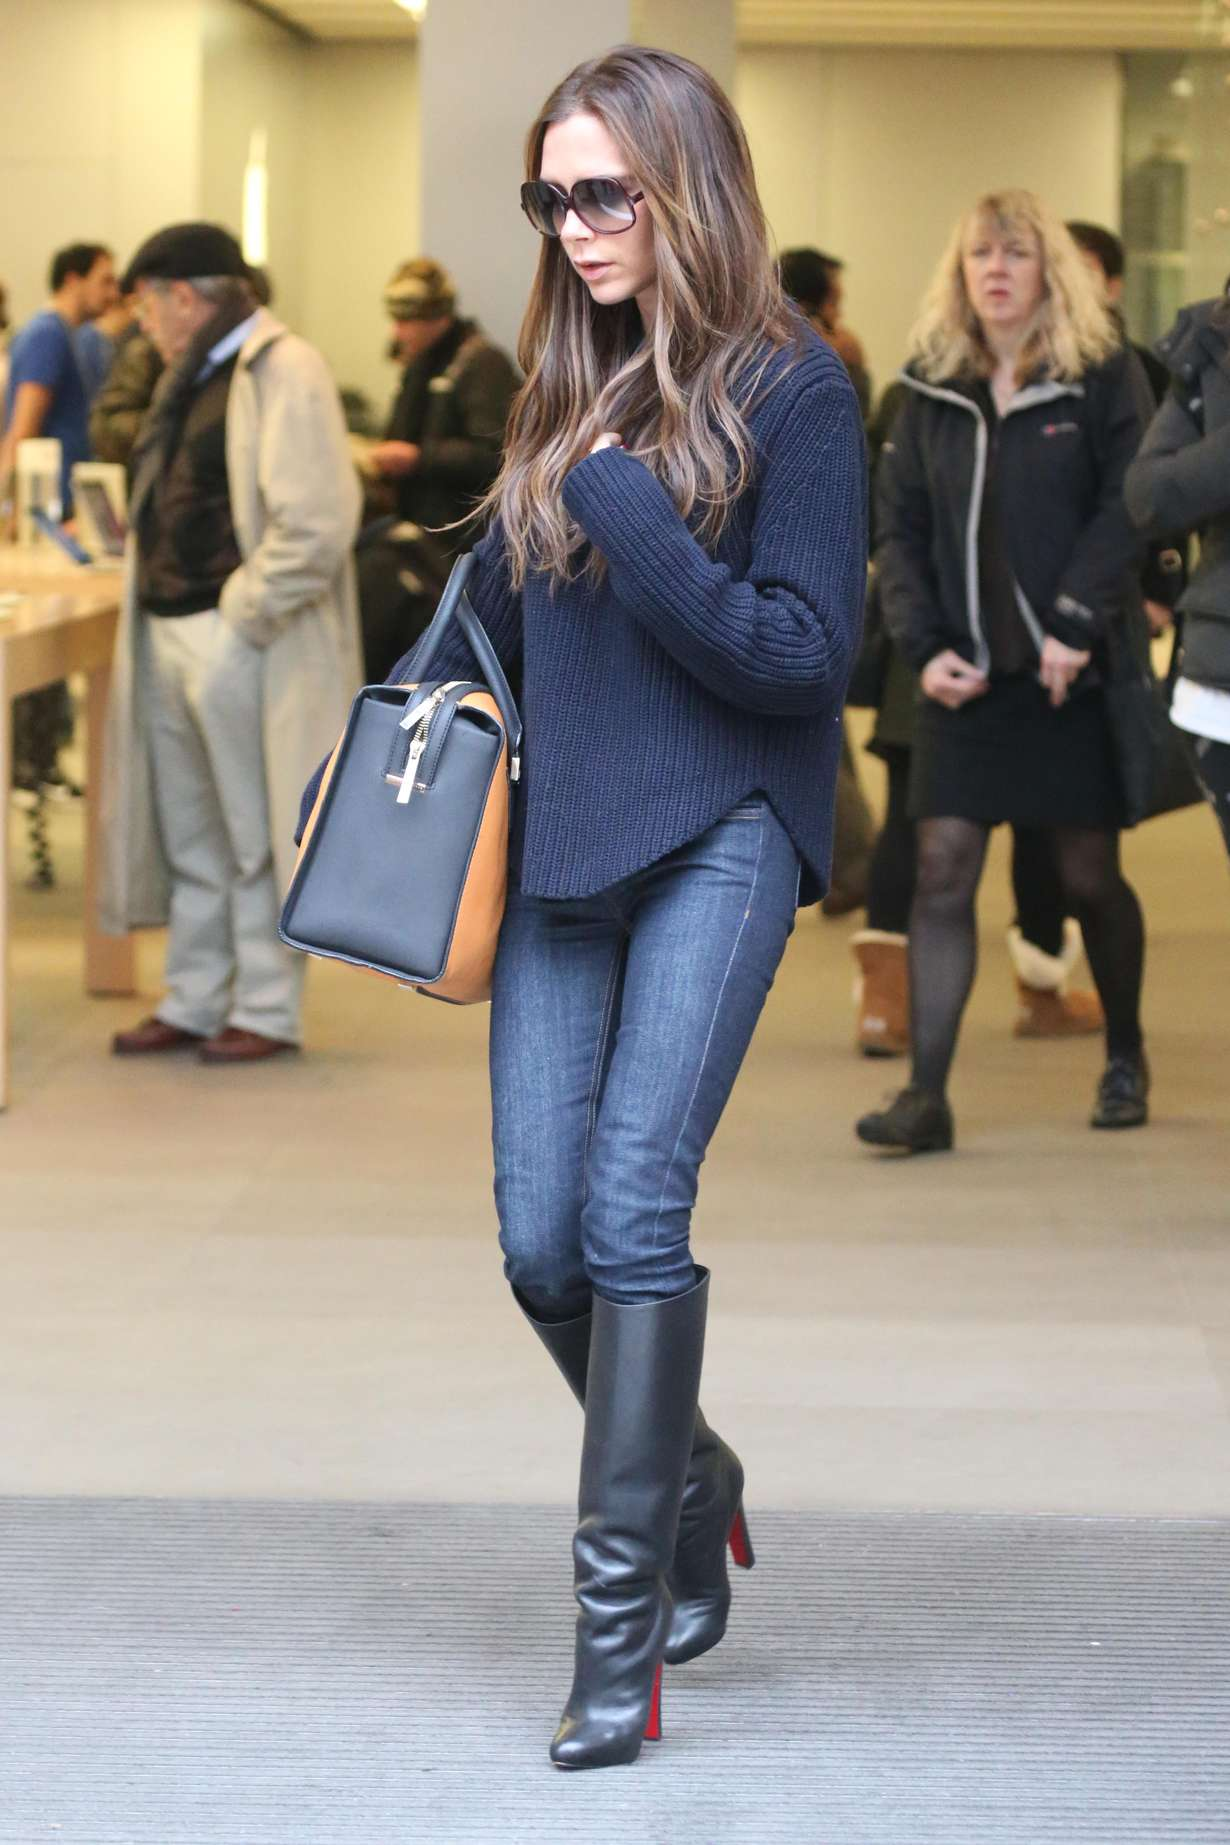 Victoria Beckham In Jeans And Boots 12 Gotceleb